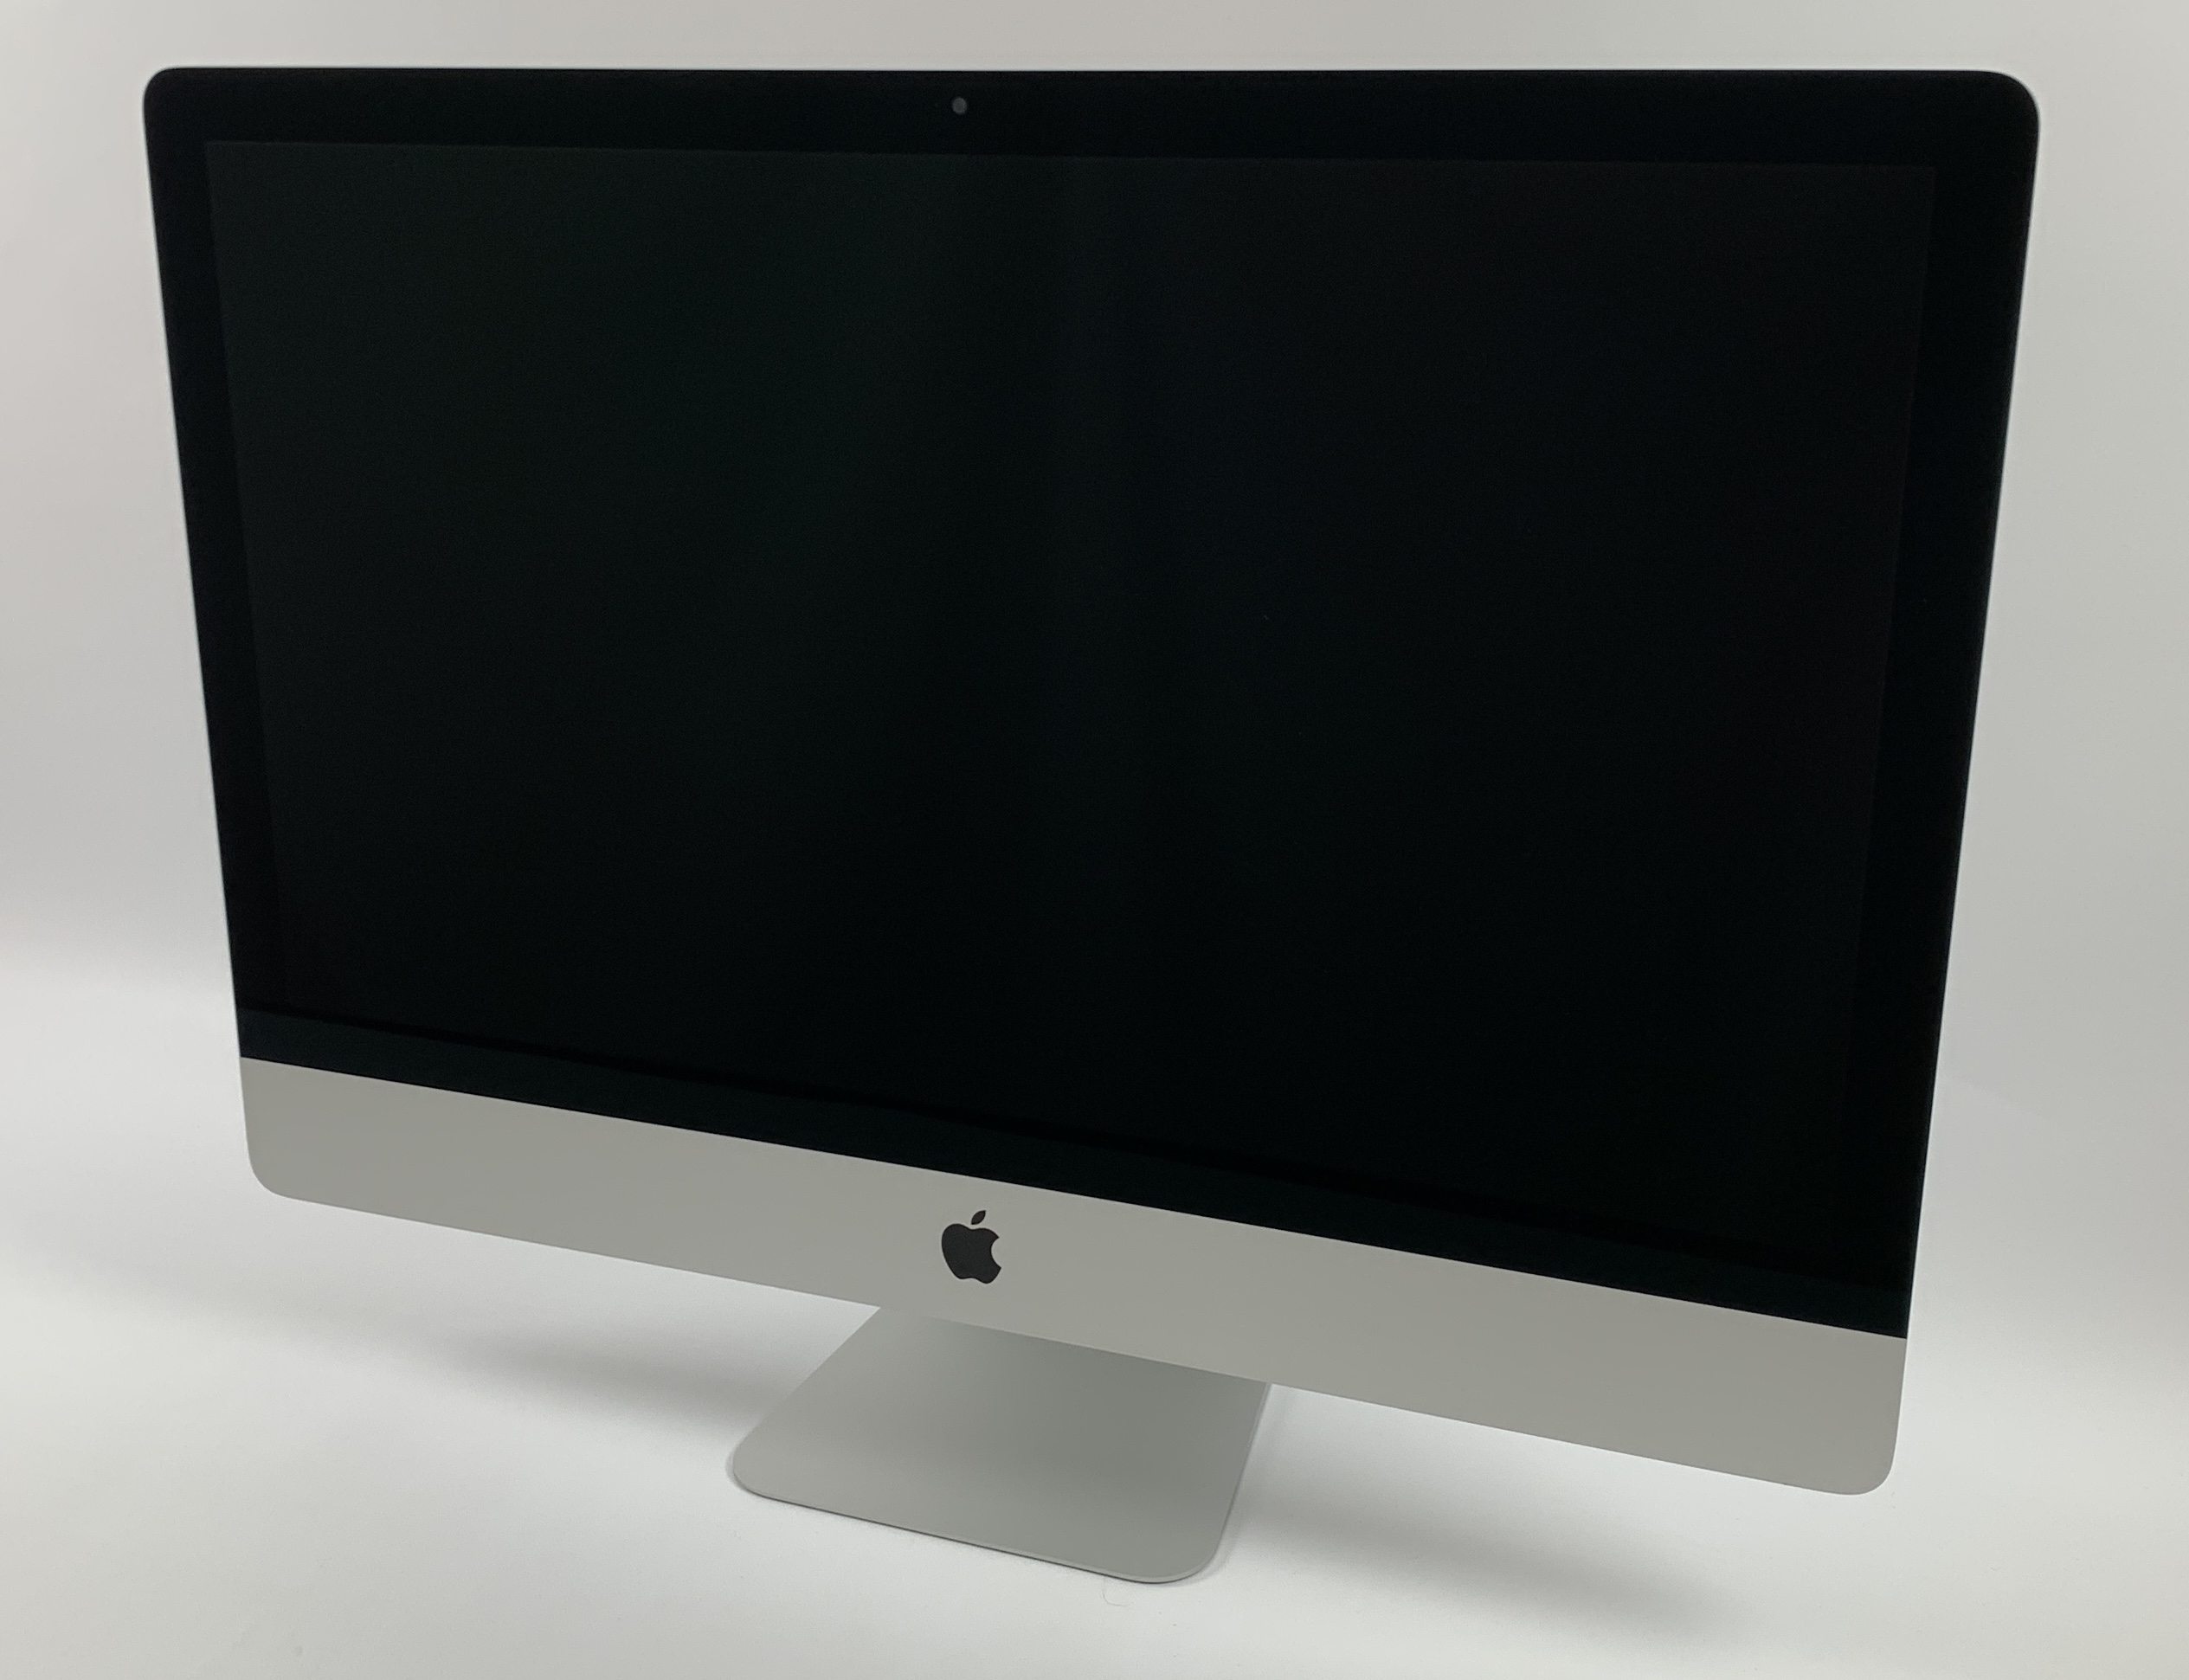 "iMac 27"" Retina 5K Early 2019 (Intel 6-Core i5 3.7 GHz 8 GB RAM 2 TB SSD), Intel 6-Core i5 3.7 GHz, 16 GB RAM, 512 GB SSD, Bild 1"